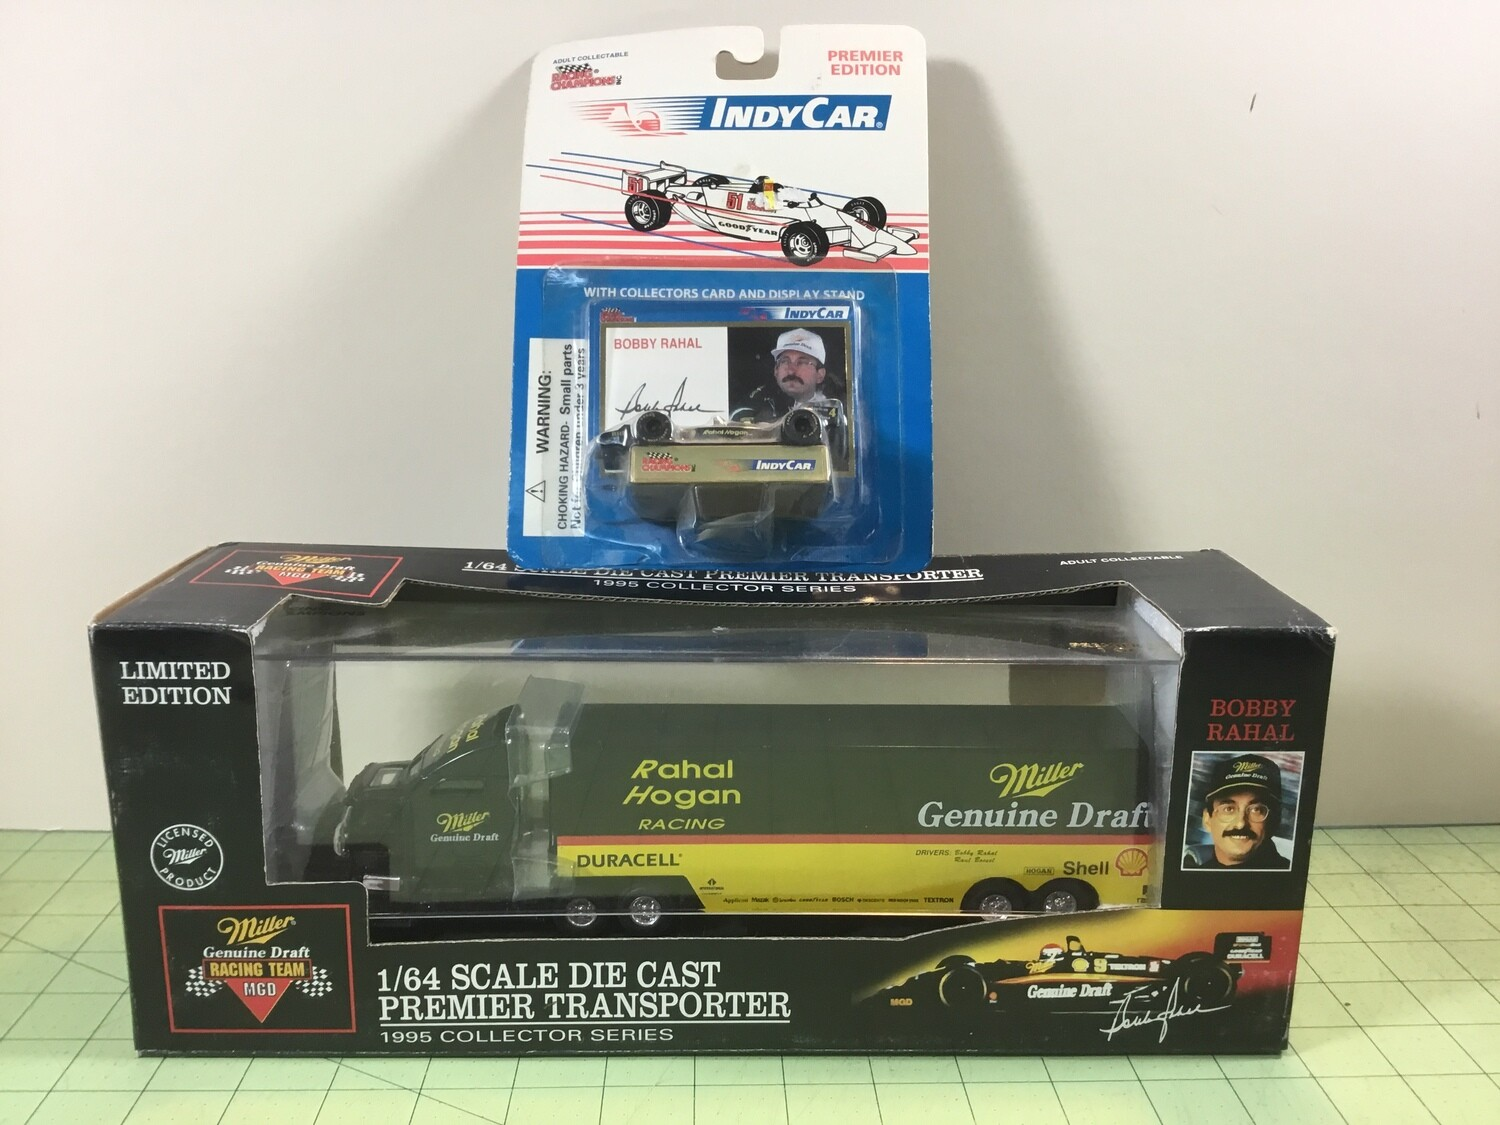 NDC152 Indy Car Bobby Rahal Hauler W/ Car